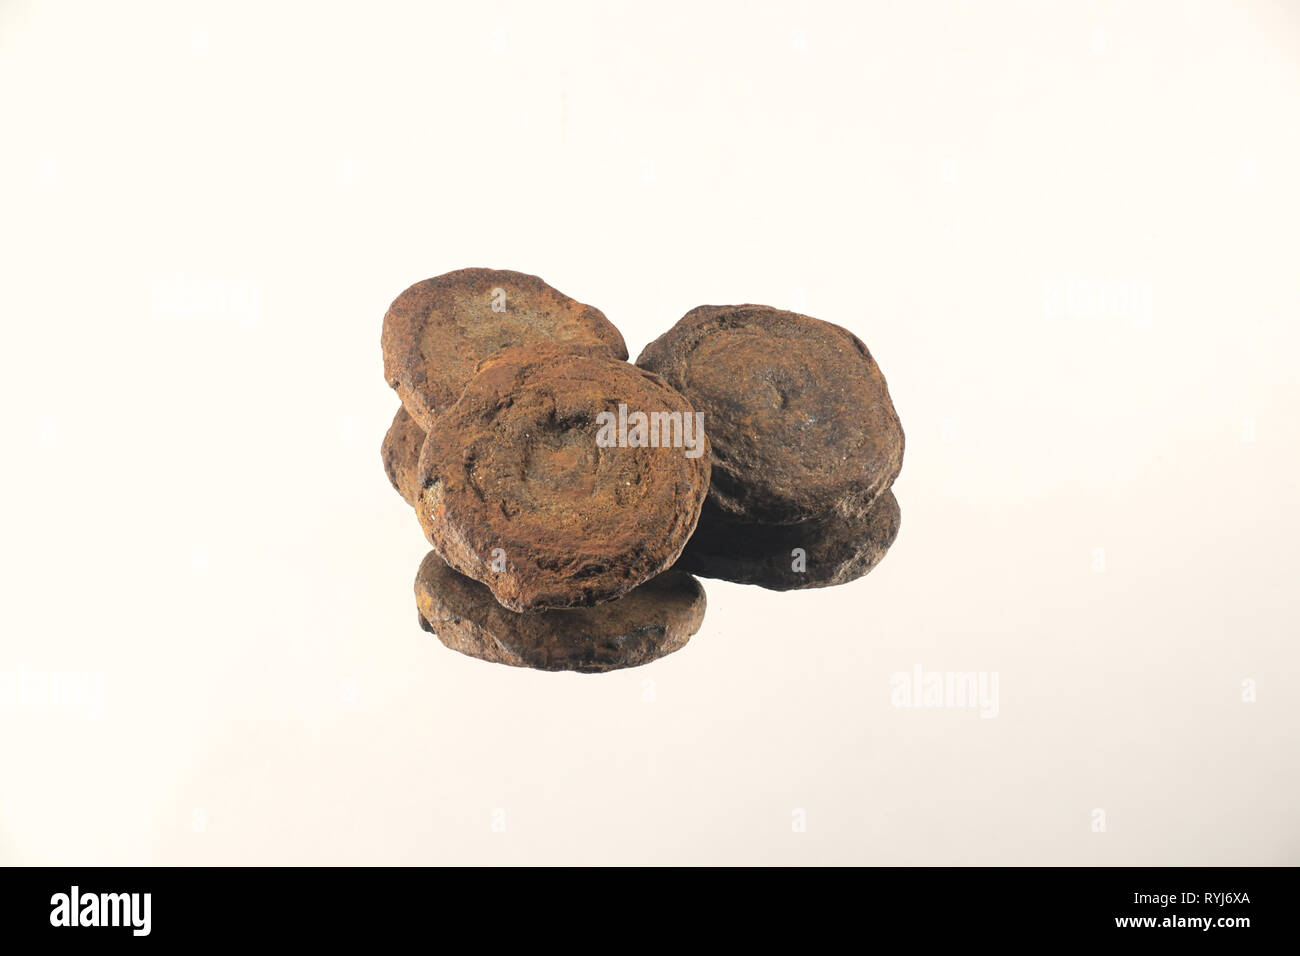 Bog iron is a form of impure iron deposit that develops in bogs or swamps.  The dominant source of iron ore in Scandinavia and Russia into the Middle  - Stock Image